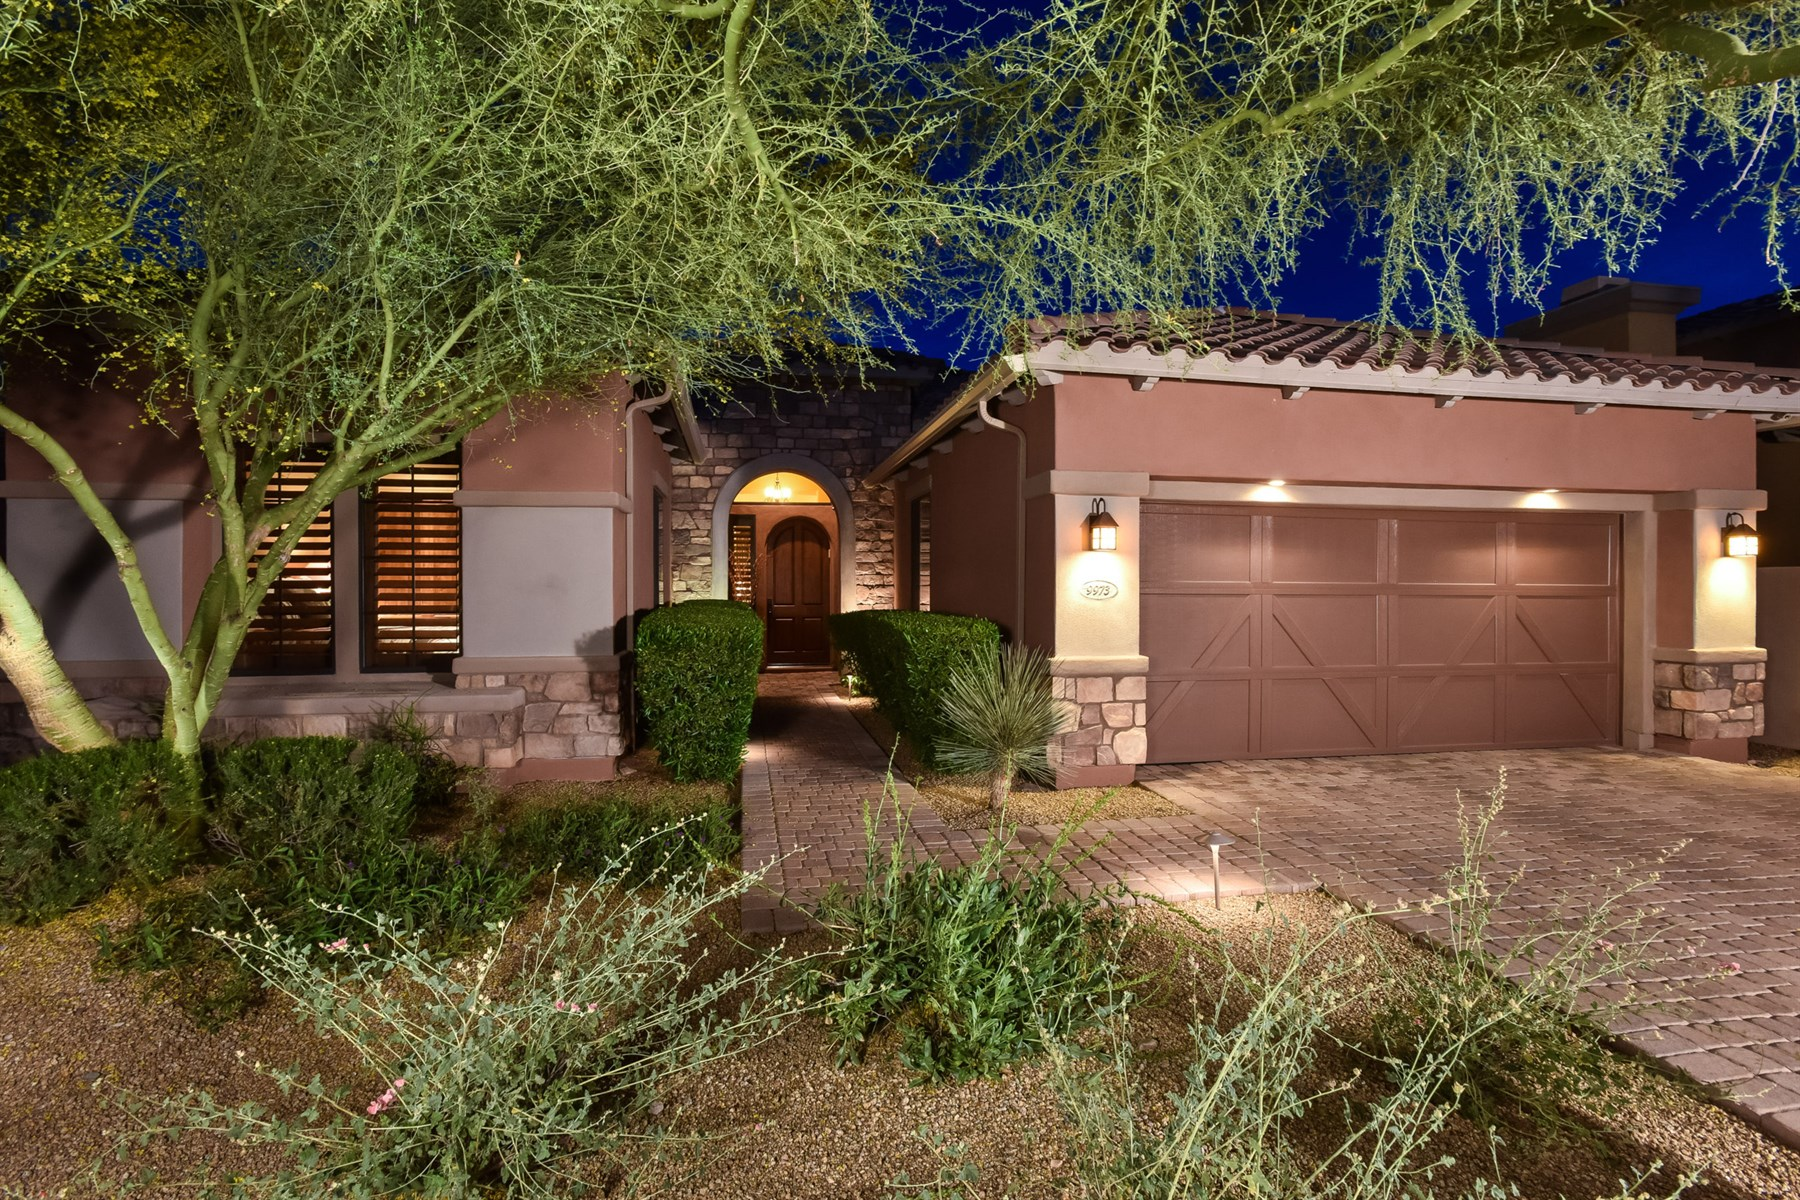 Single Family Home for Sale at Fabulous Single Level Home On A Prime View Lot In North Scottsdale 9973 E Edgestone Drive Scottsdale, Arizona 85255 United States